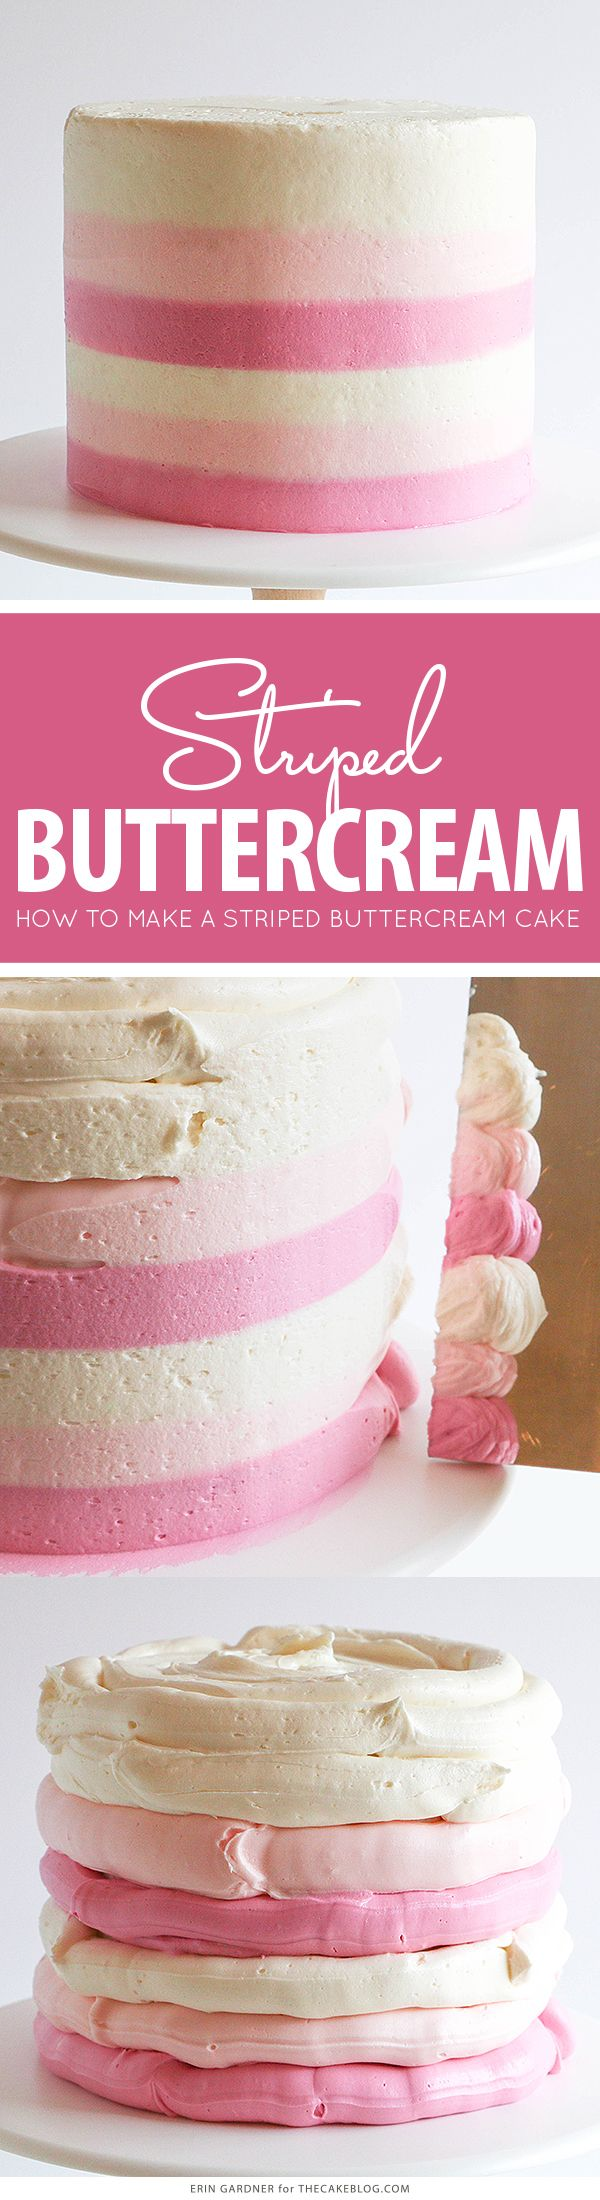 How to make a striped buttercream cake   by Erin Gardner for TheCakeBlog.com